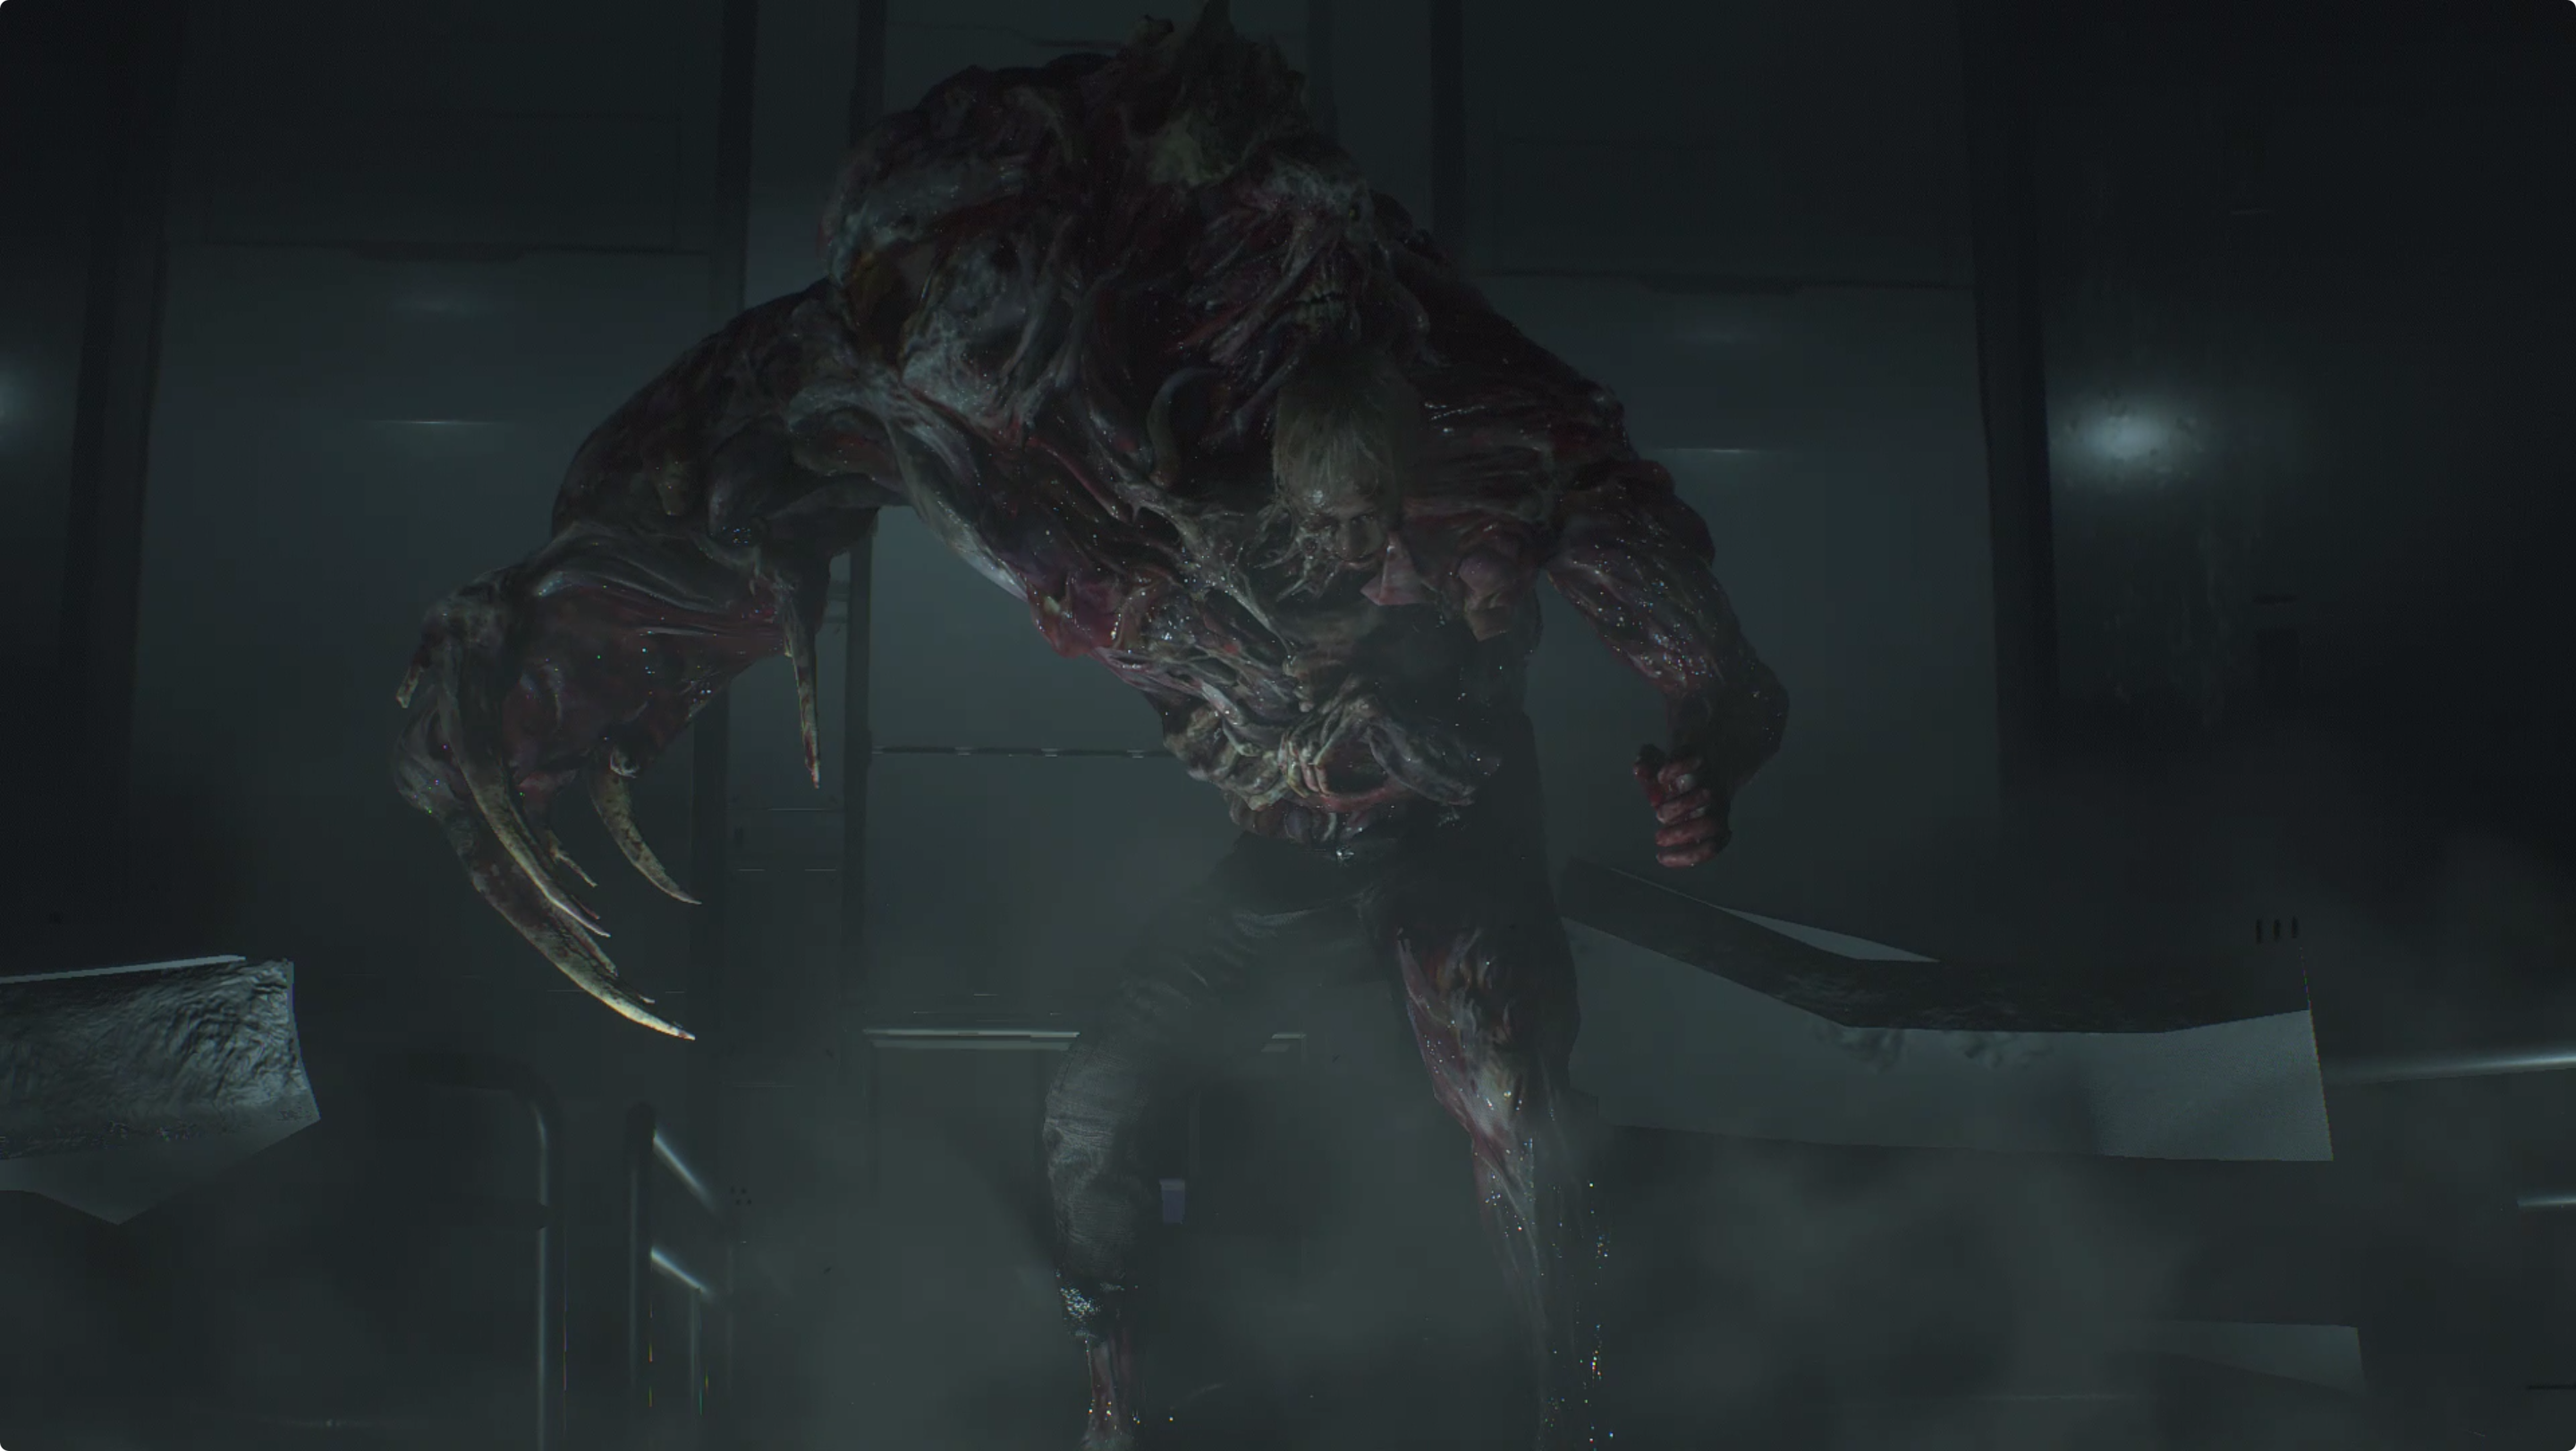 Resident Evil 2 West Area, G (Phase 3) boss fight, and escape the